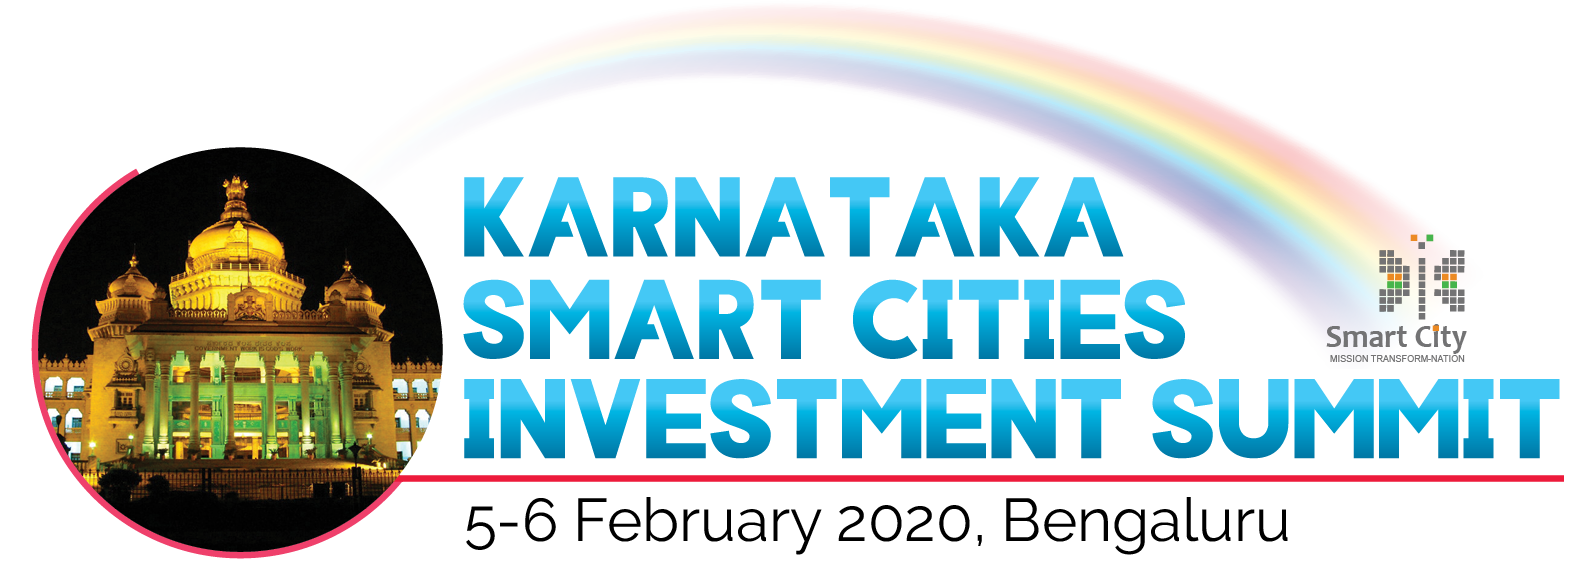 Karnataka Smartcities Investment Summit, Bengaluru